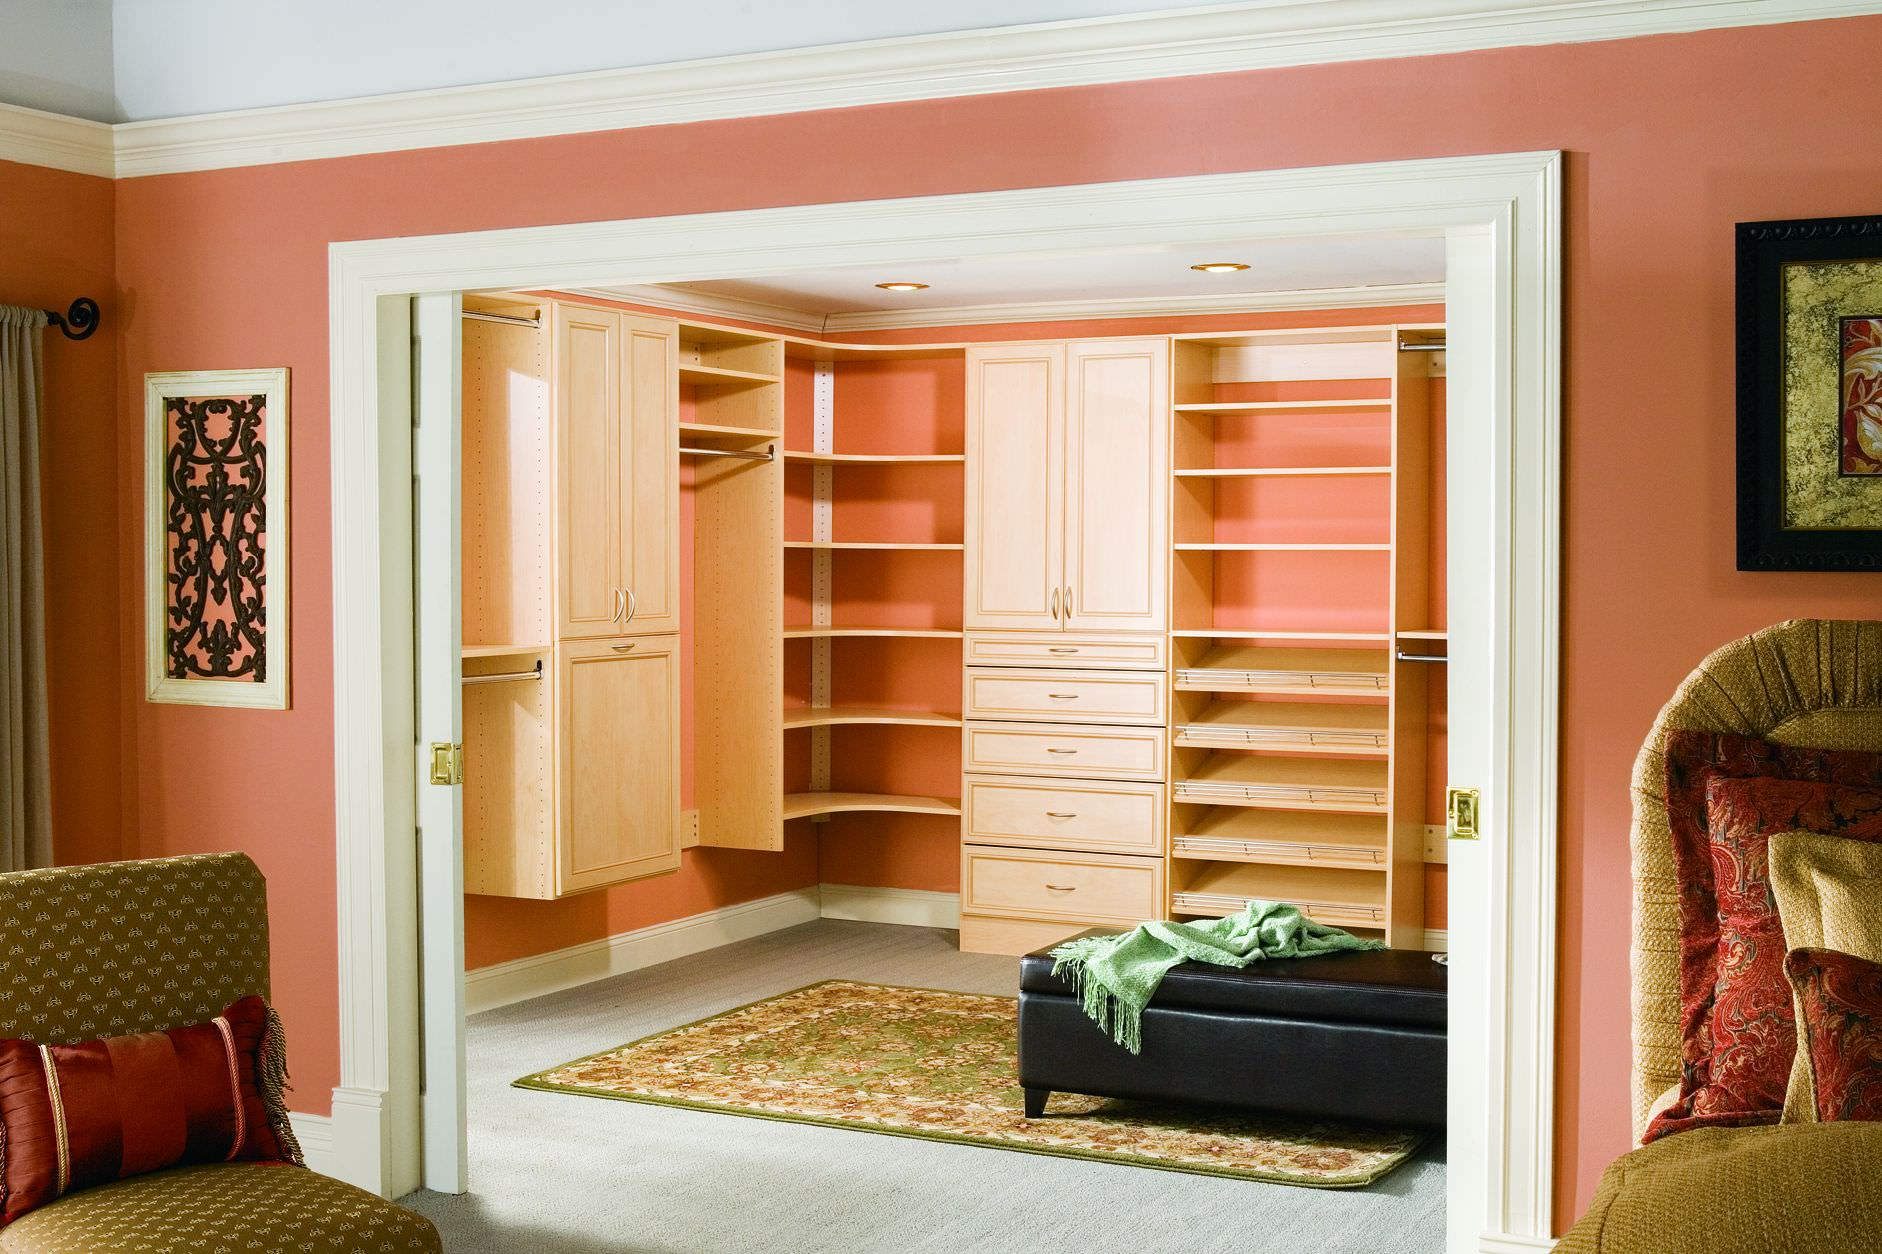 Tremendous custom bedroom closet designs roselawnlutheran for Custom bedroom designs